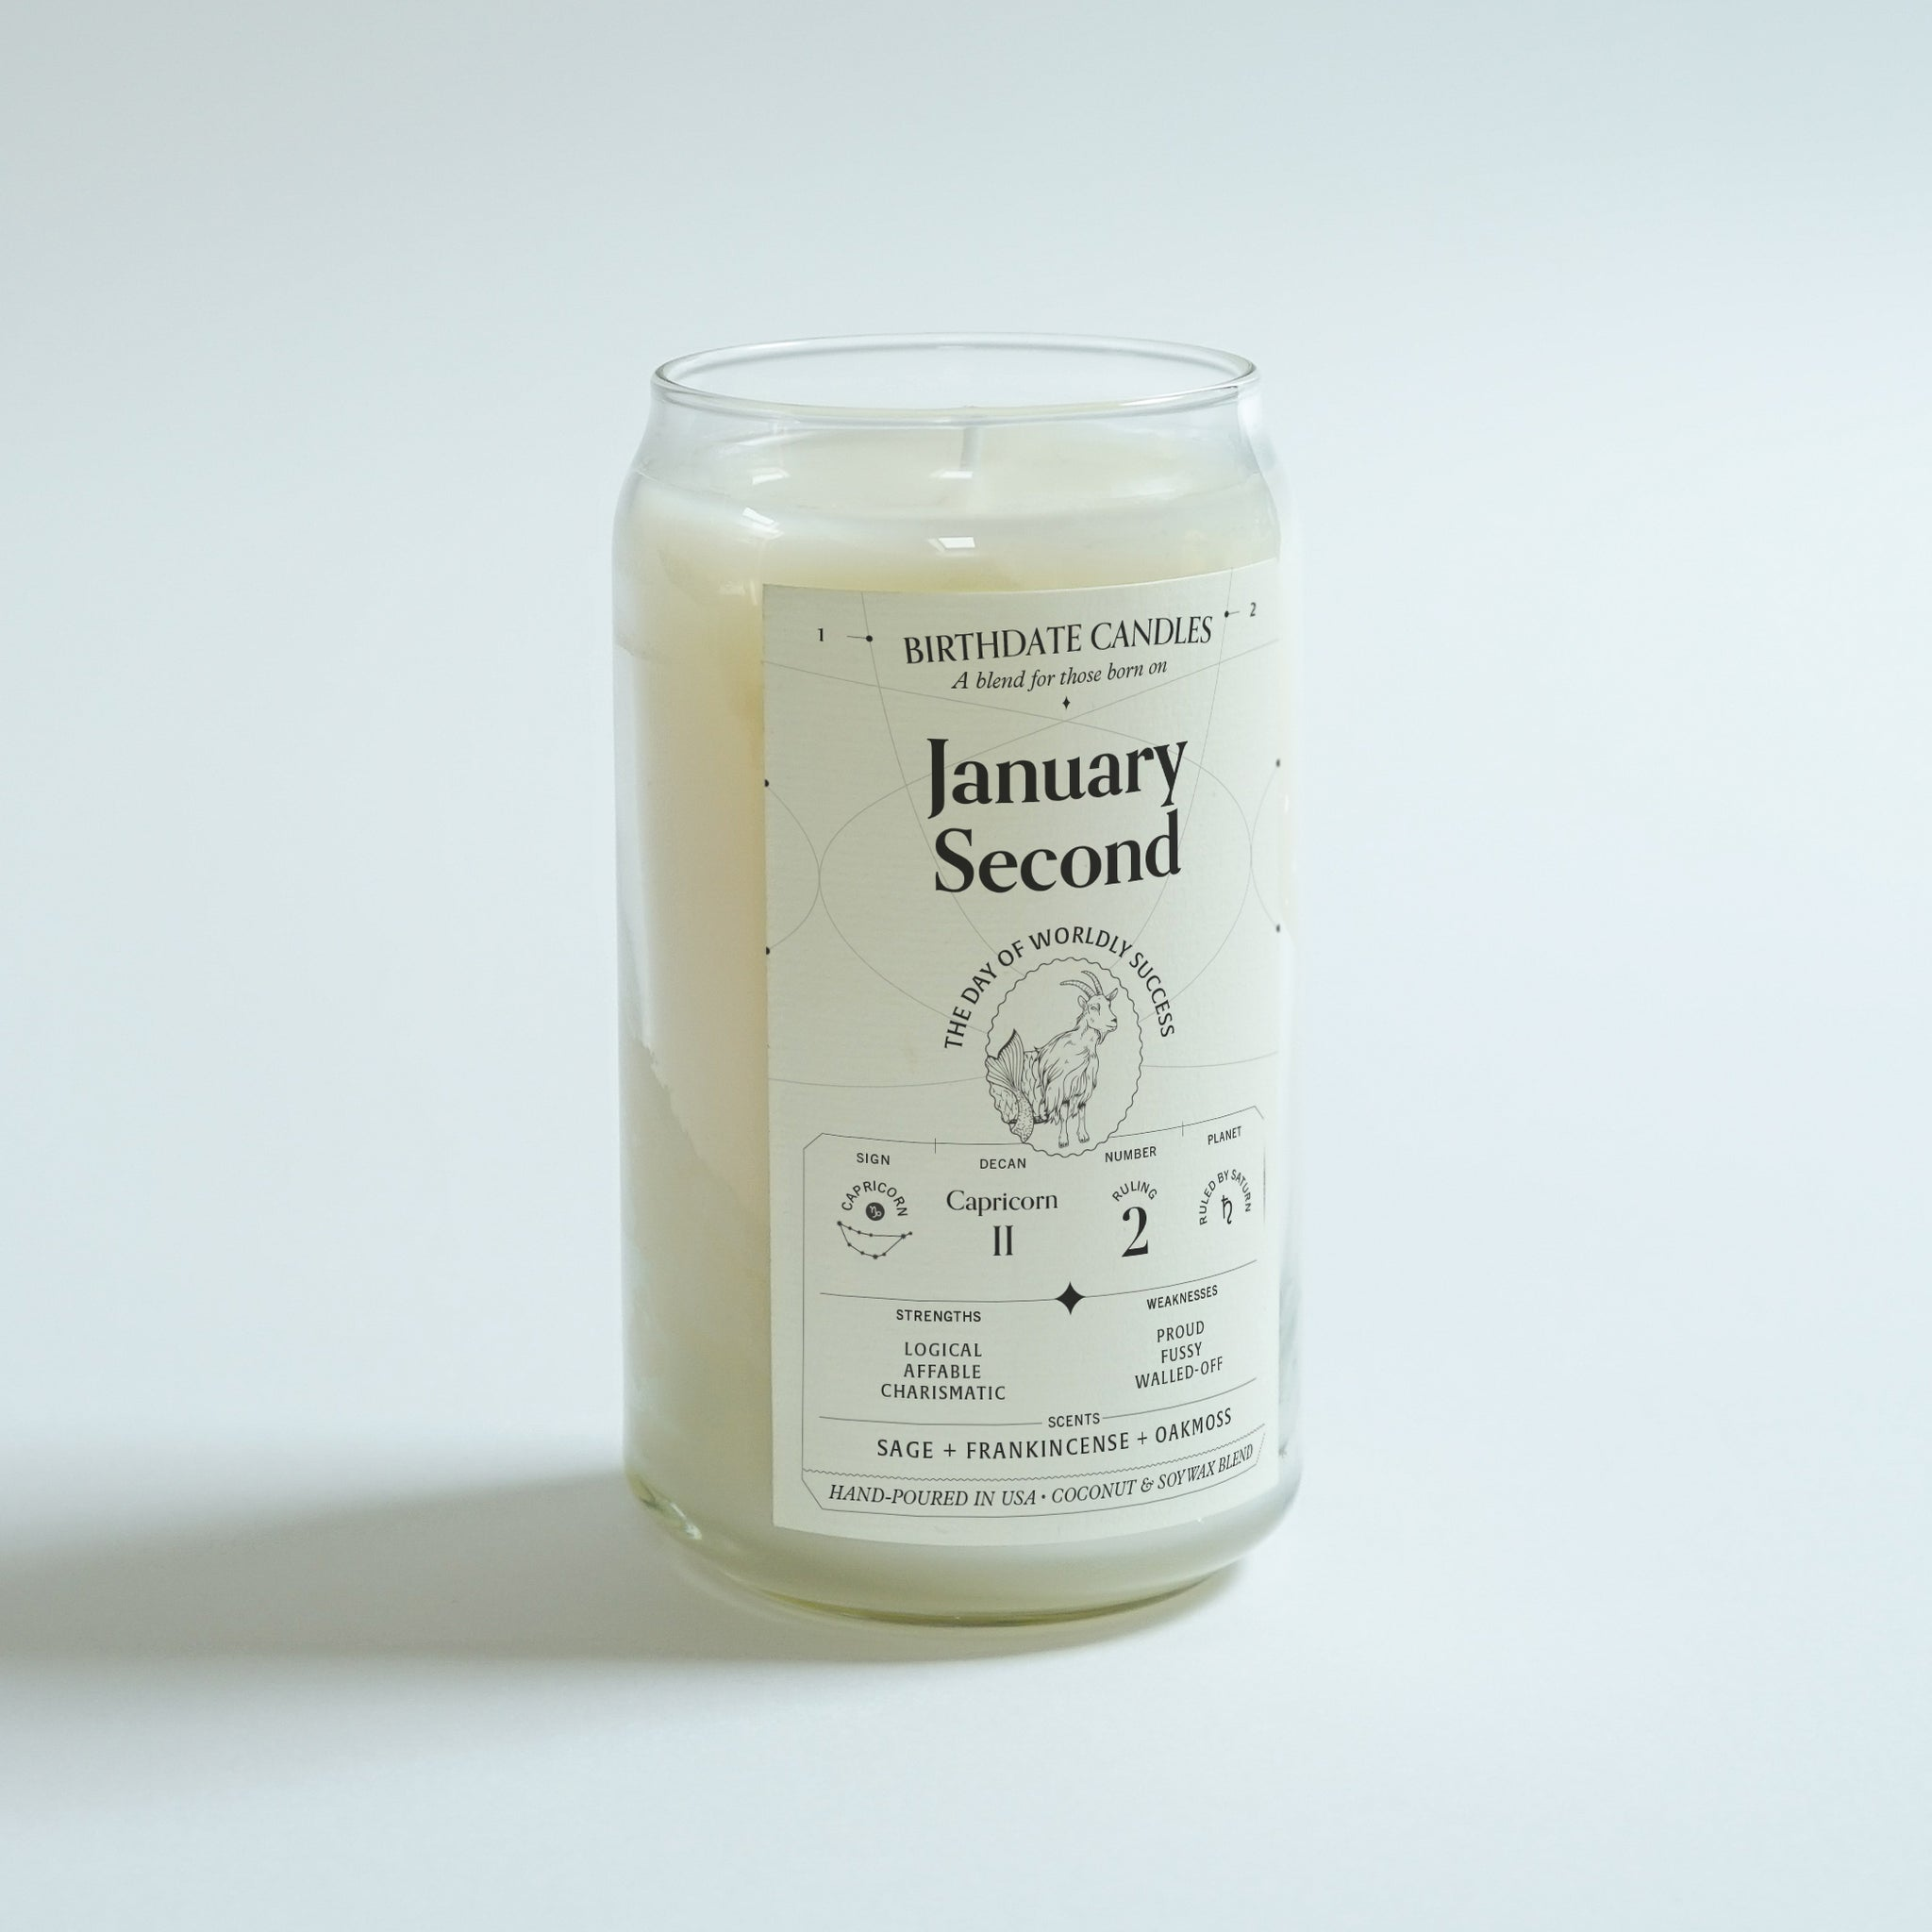 The January Second Birthday Candle